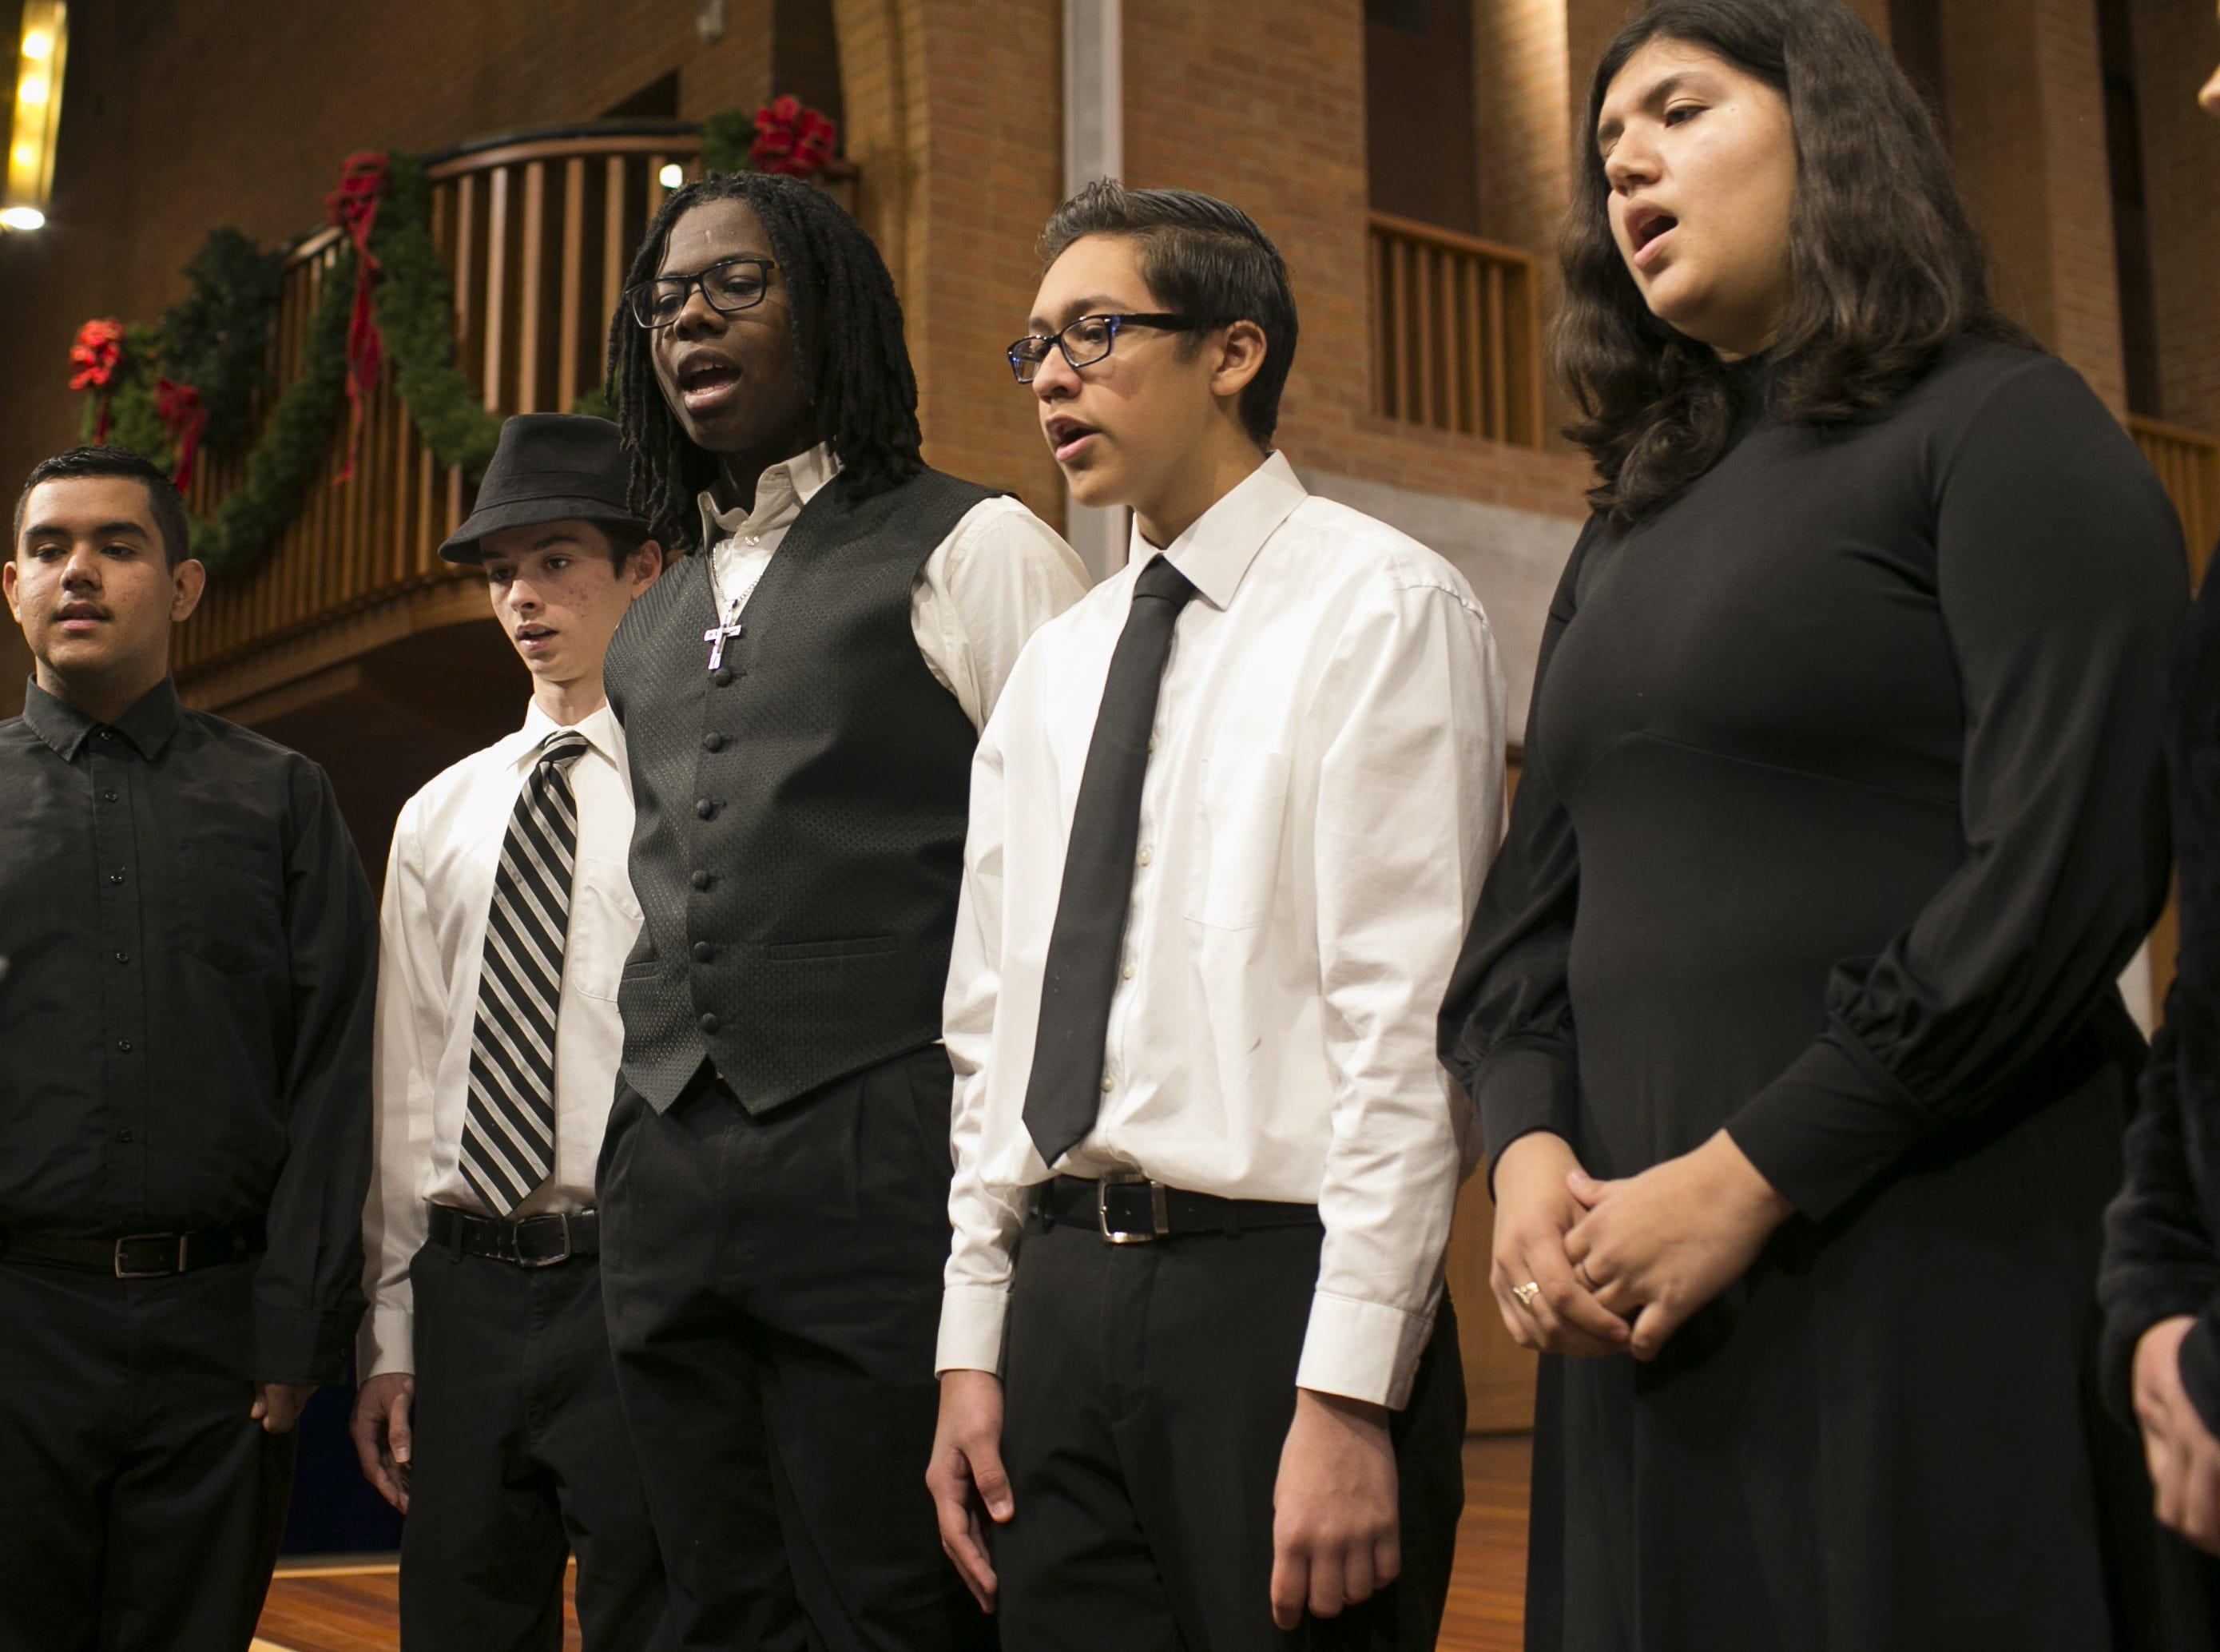 Choir students participate in free music classes at Rosie's House music academy on Dec. 15, 2018. Rosie's House offers free, 100 percent-charity-funded programs for at-risk youth.